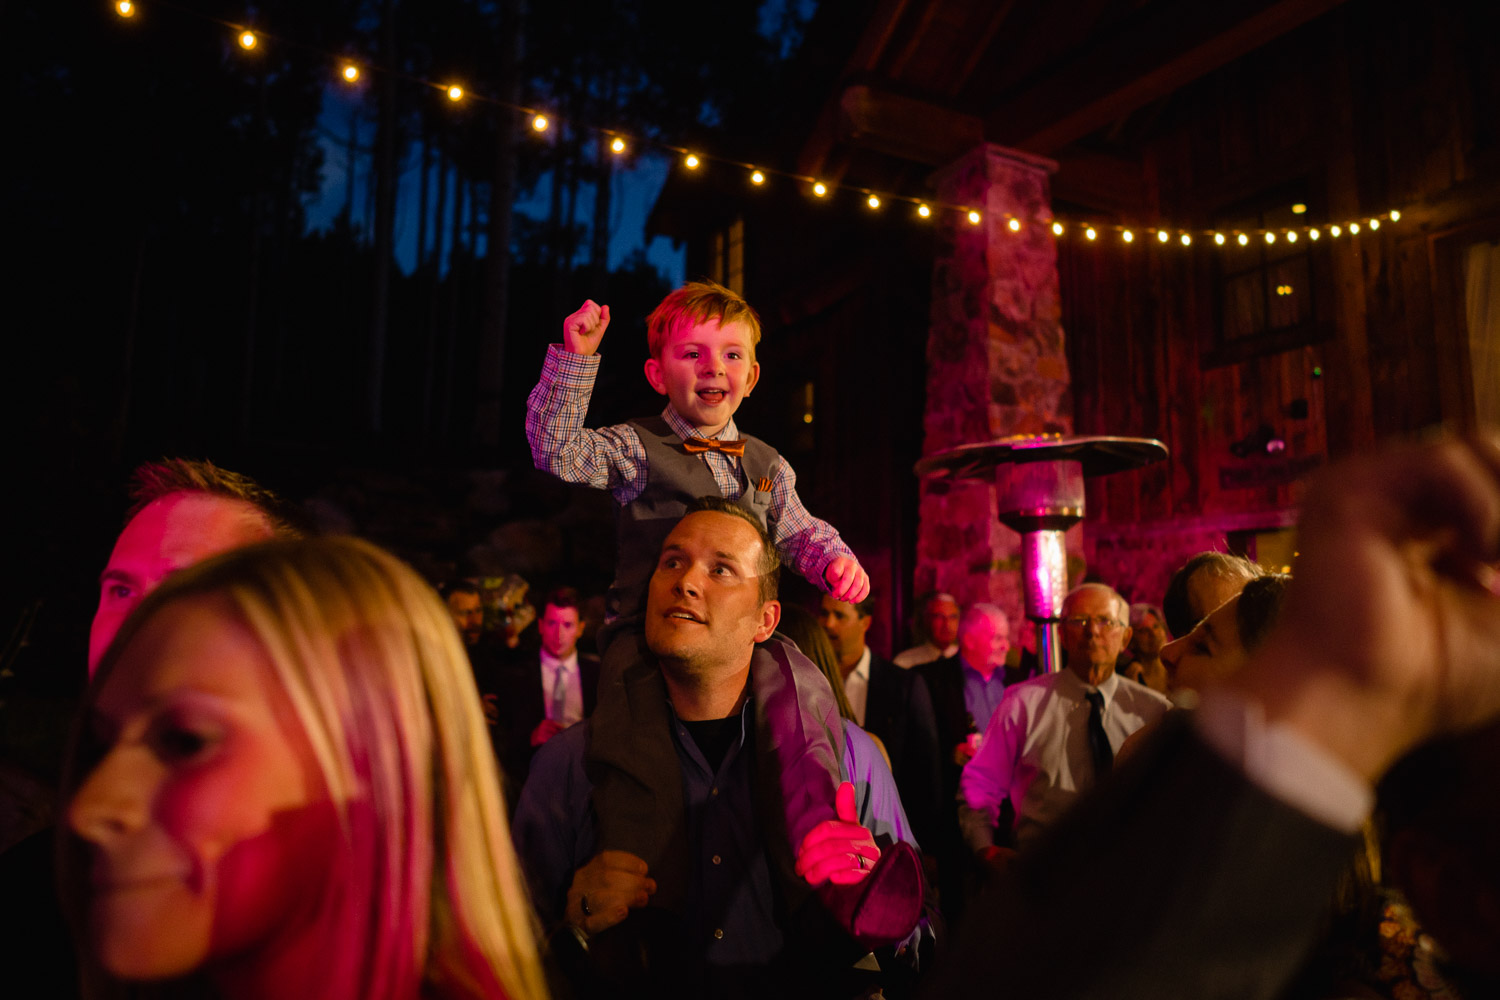 kid on man's shoulders with outside lights wedding